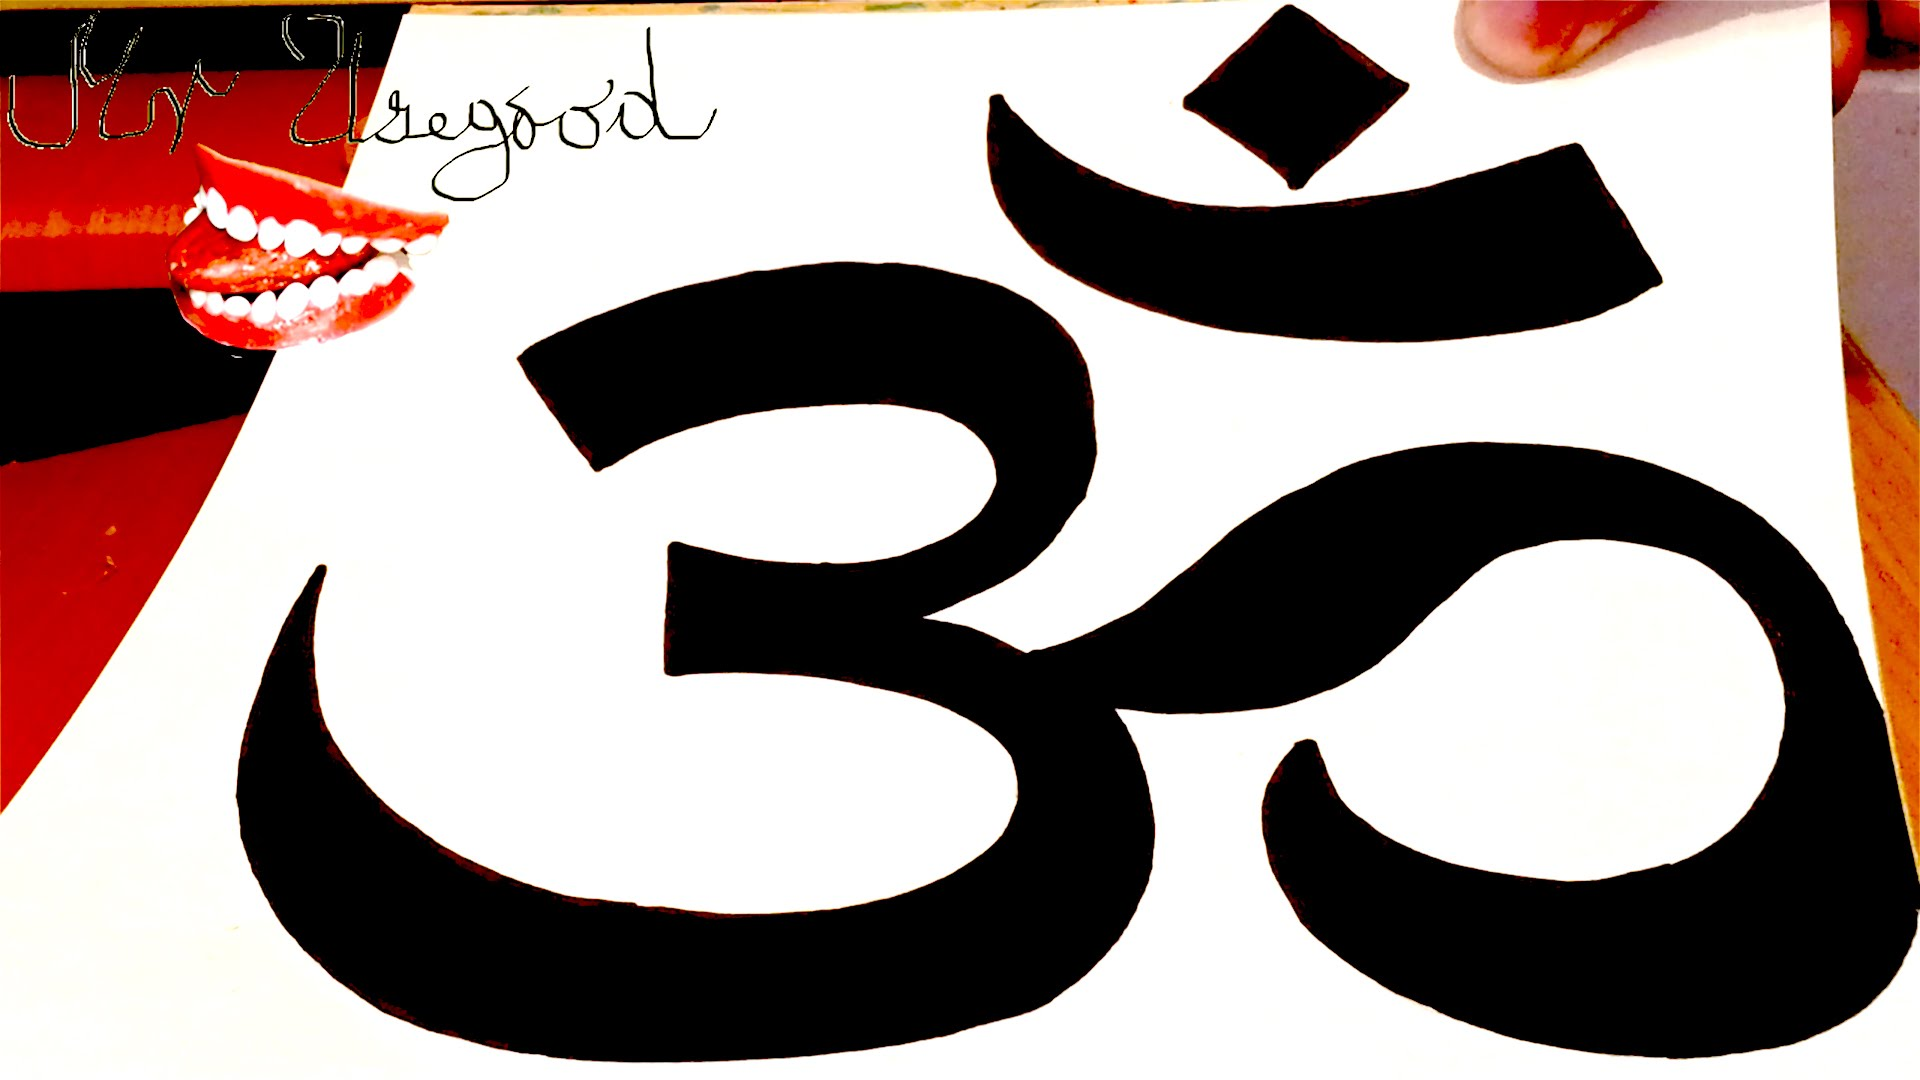 1920x1080 How To Draw Om Symbollogo Easy On Paper With Pencil And Color